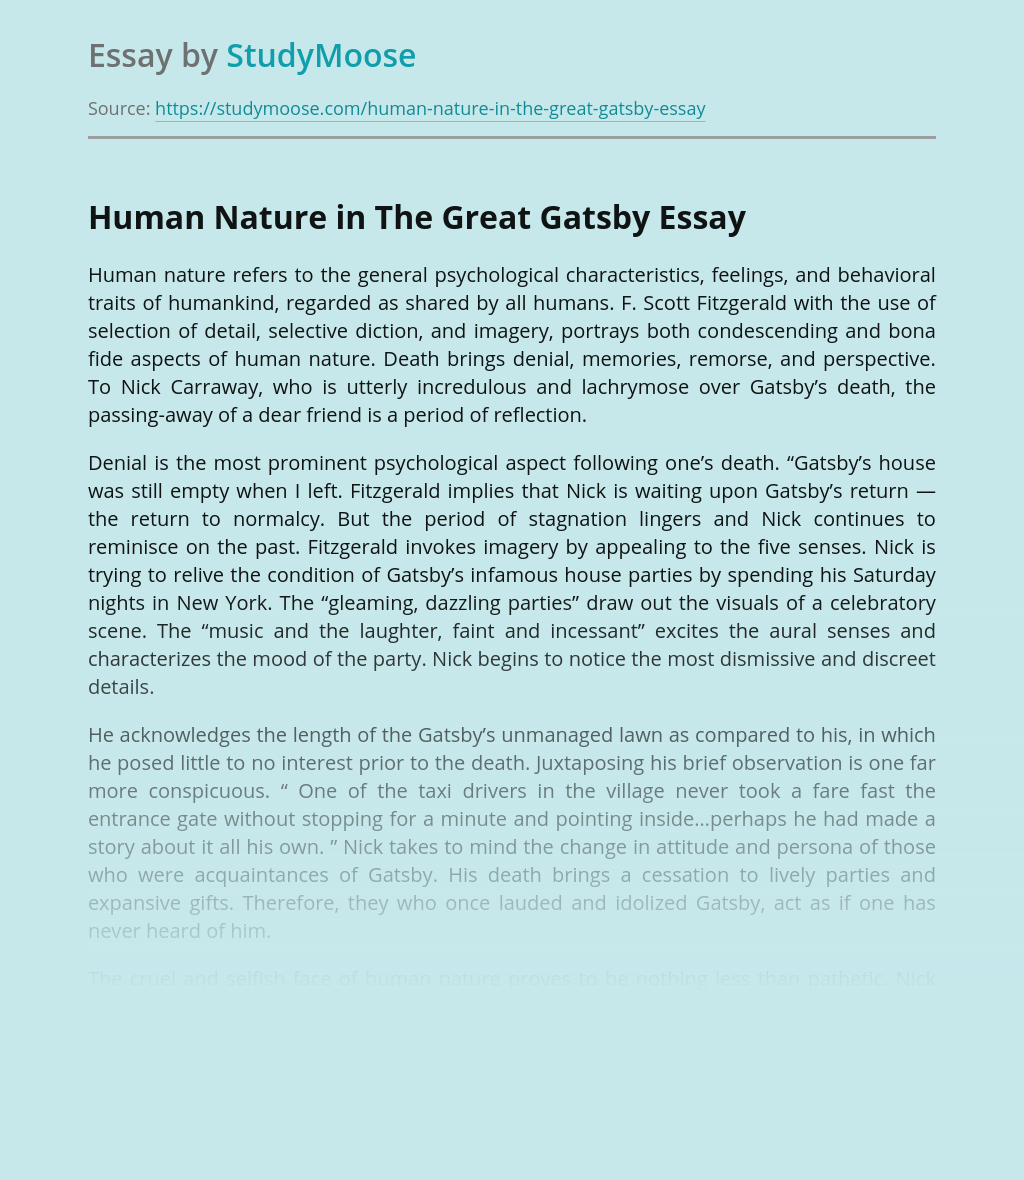 Human Nature in The Great Gatsby